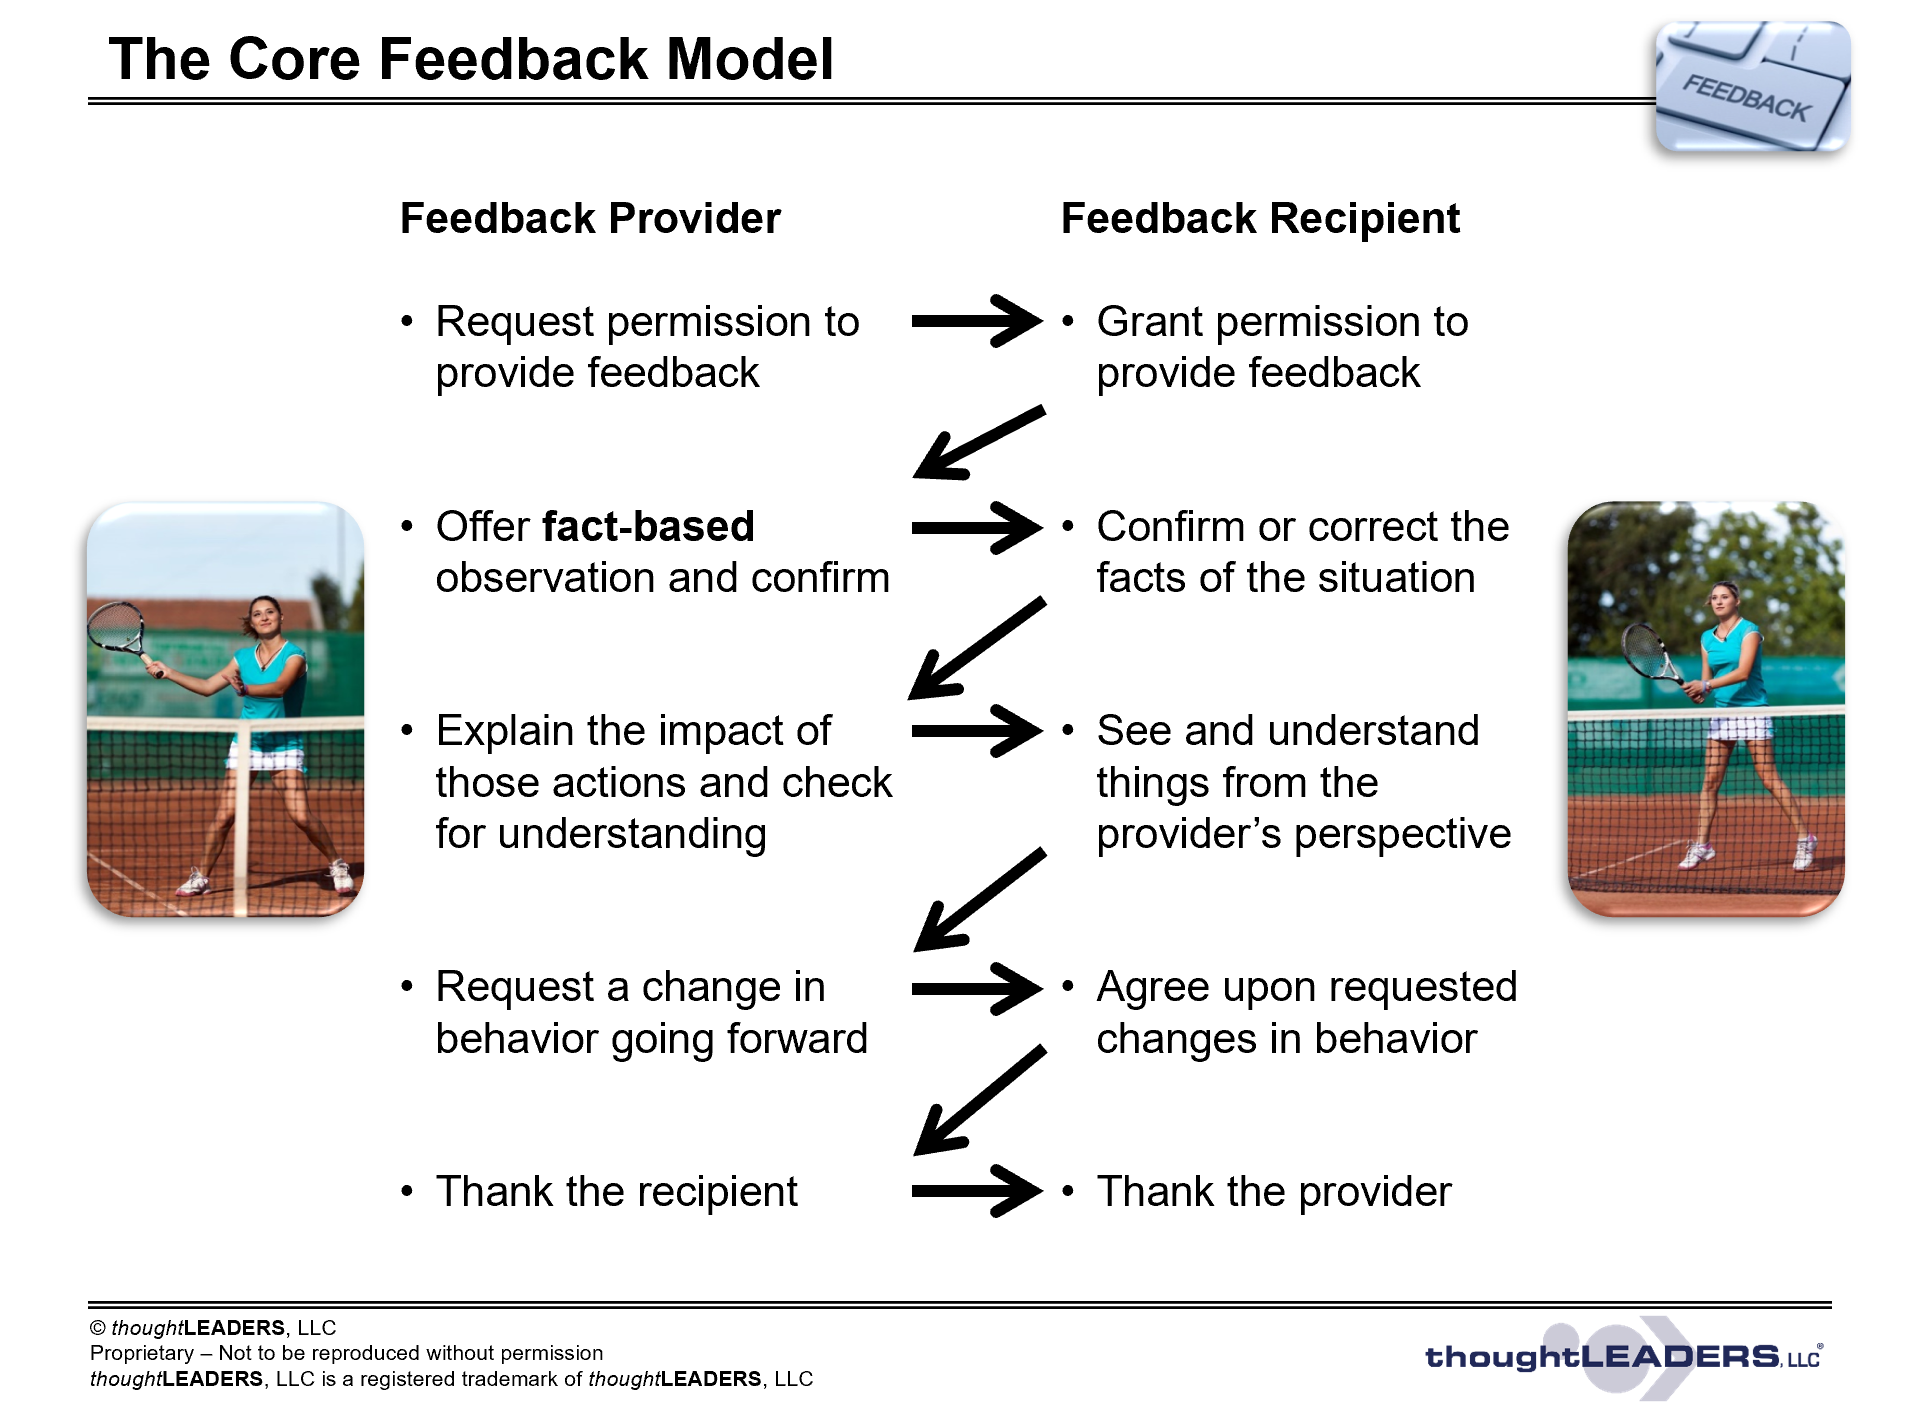 thoughtLEADERS Feedback Model